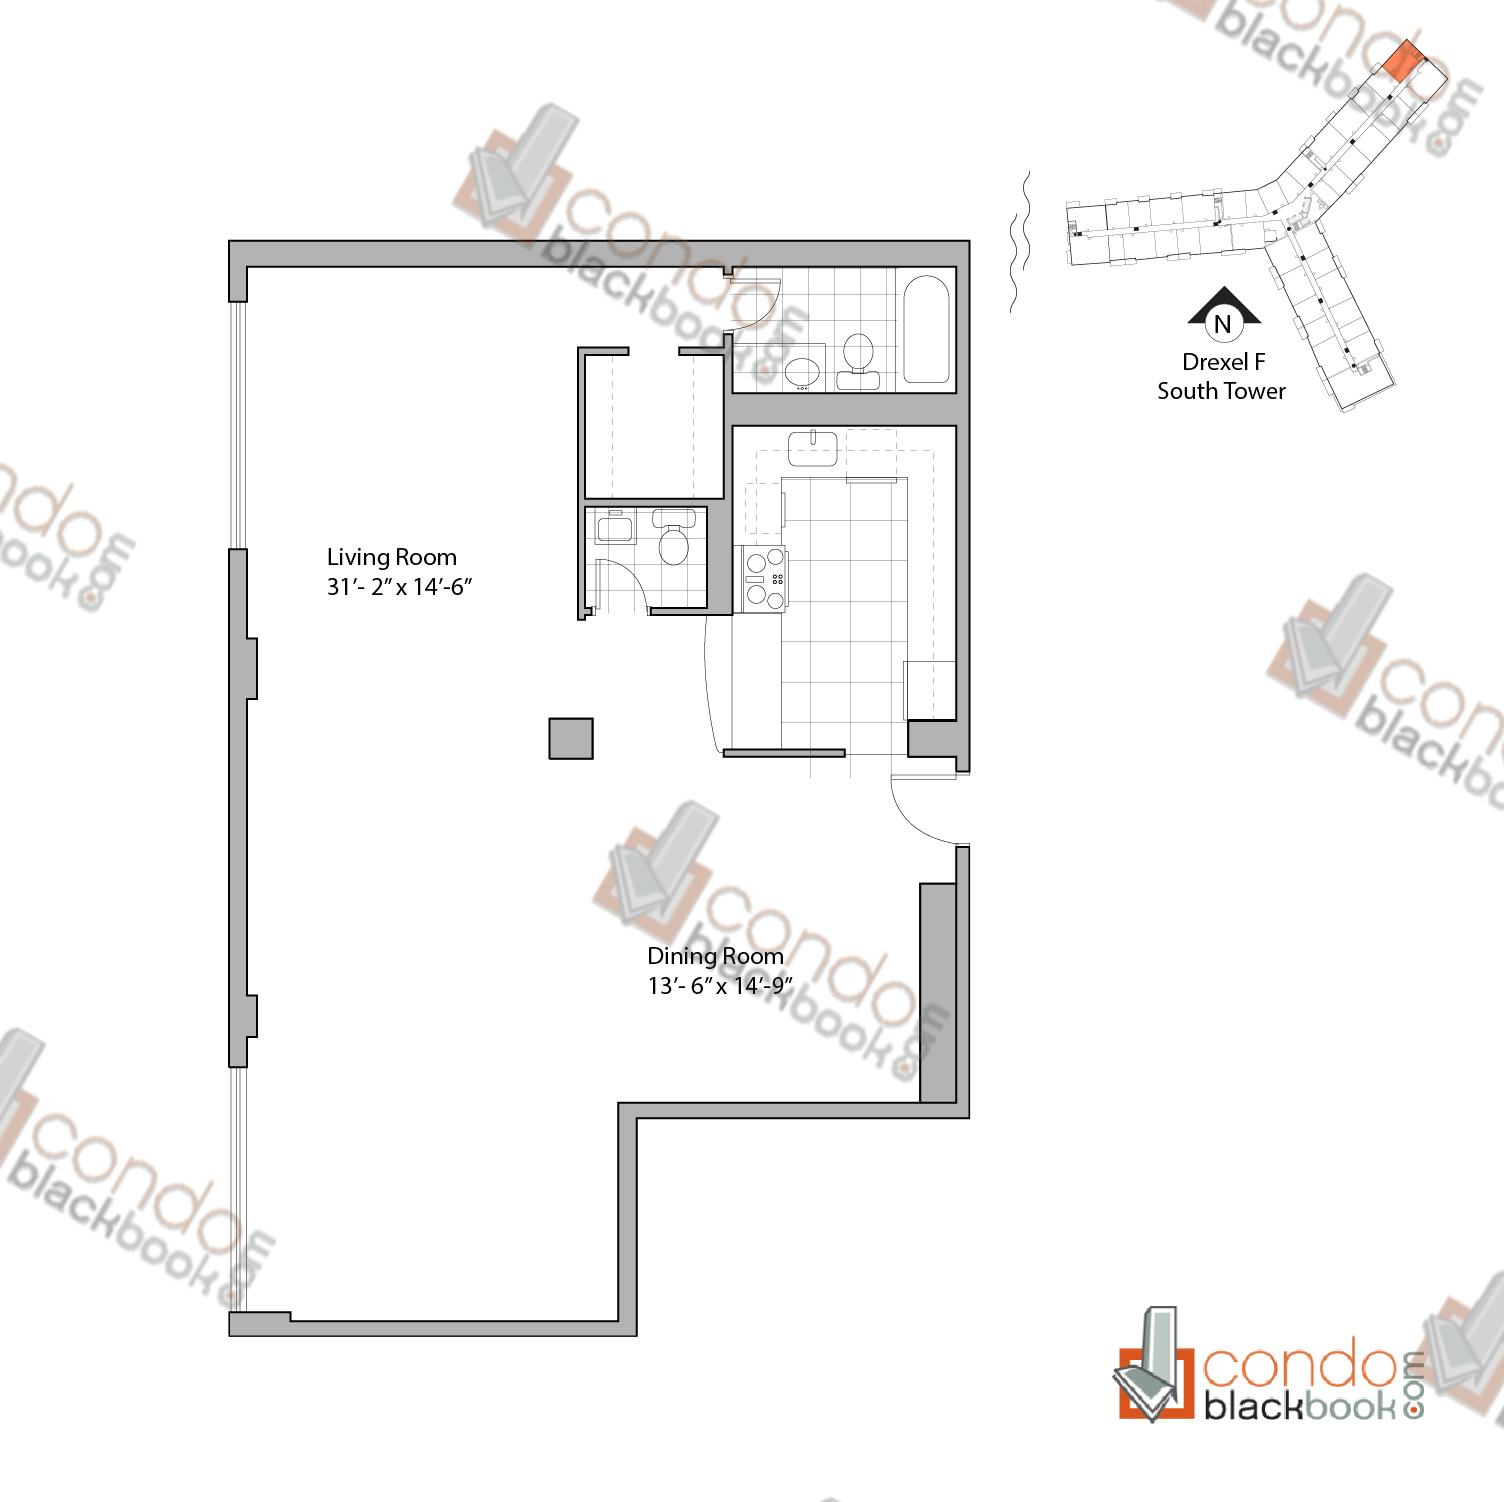 Flamingo south tower floor plan for House plans under 200 000